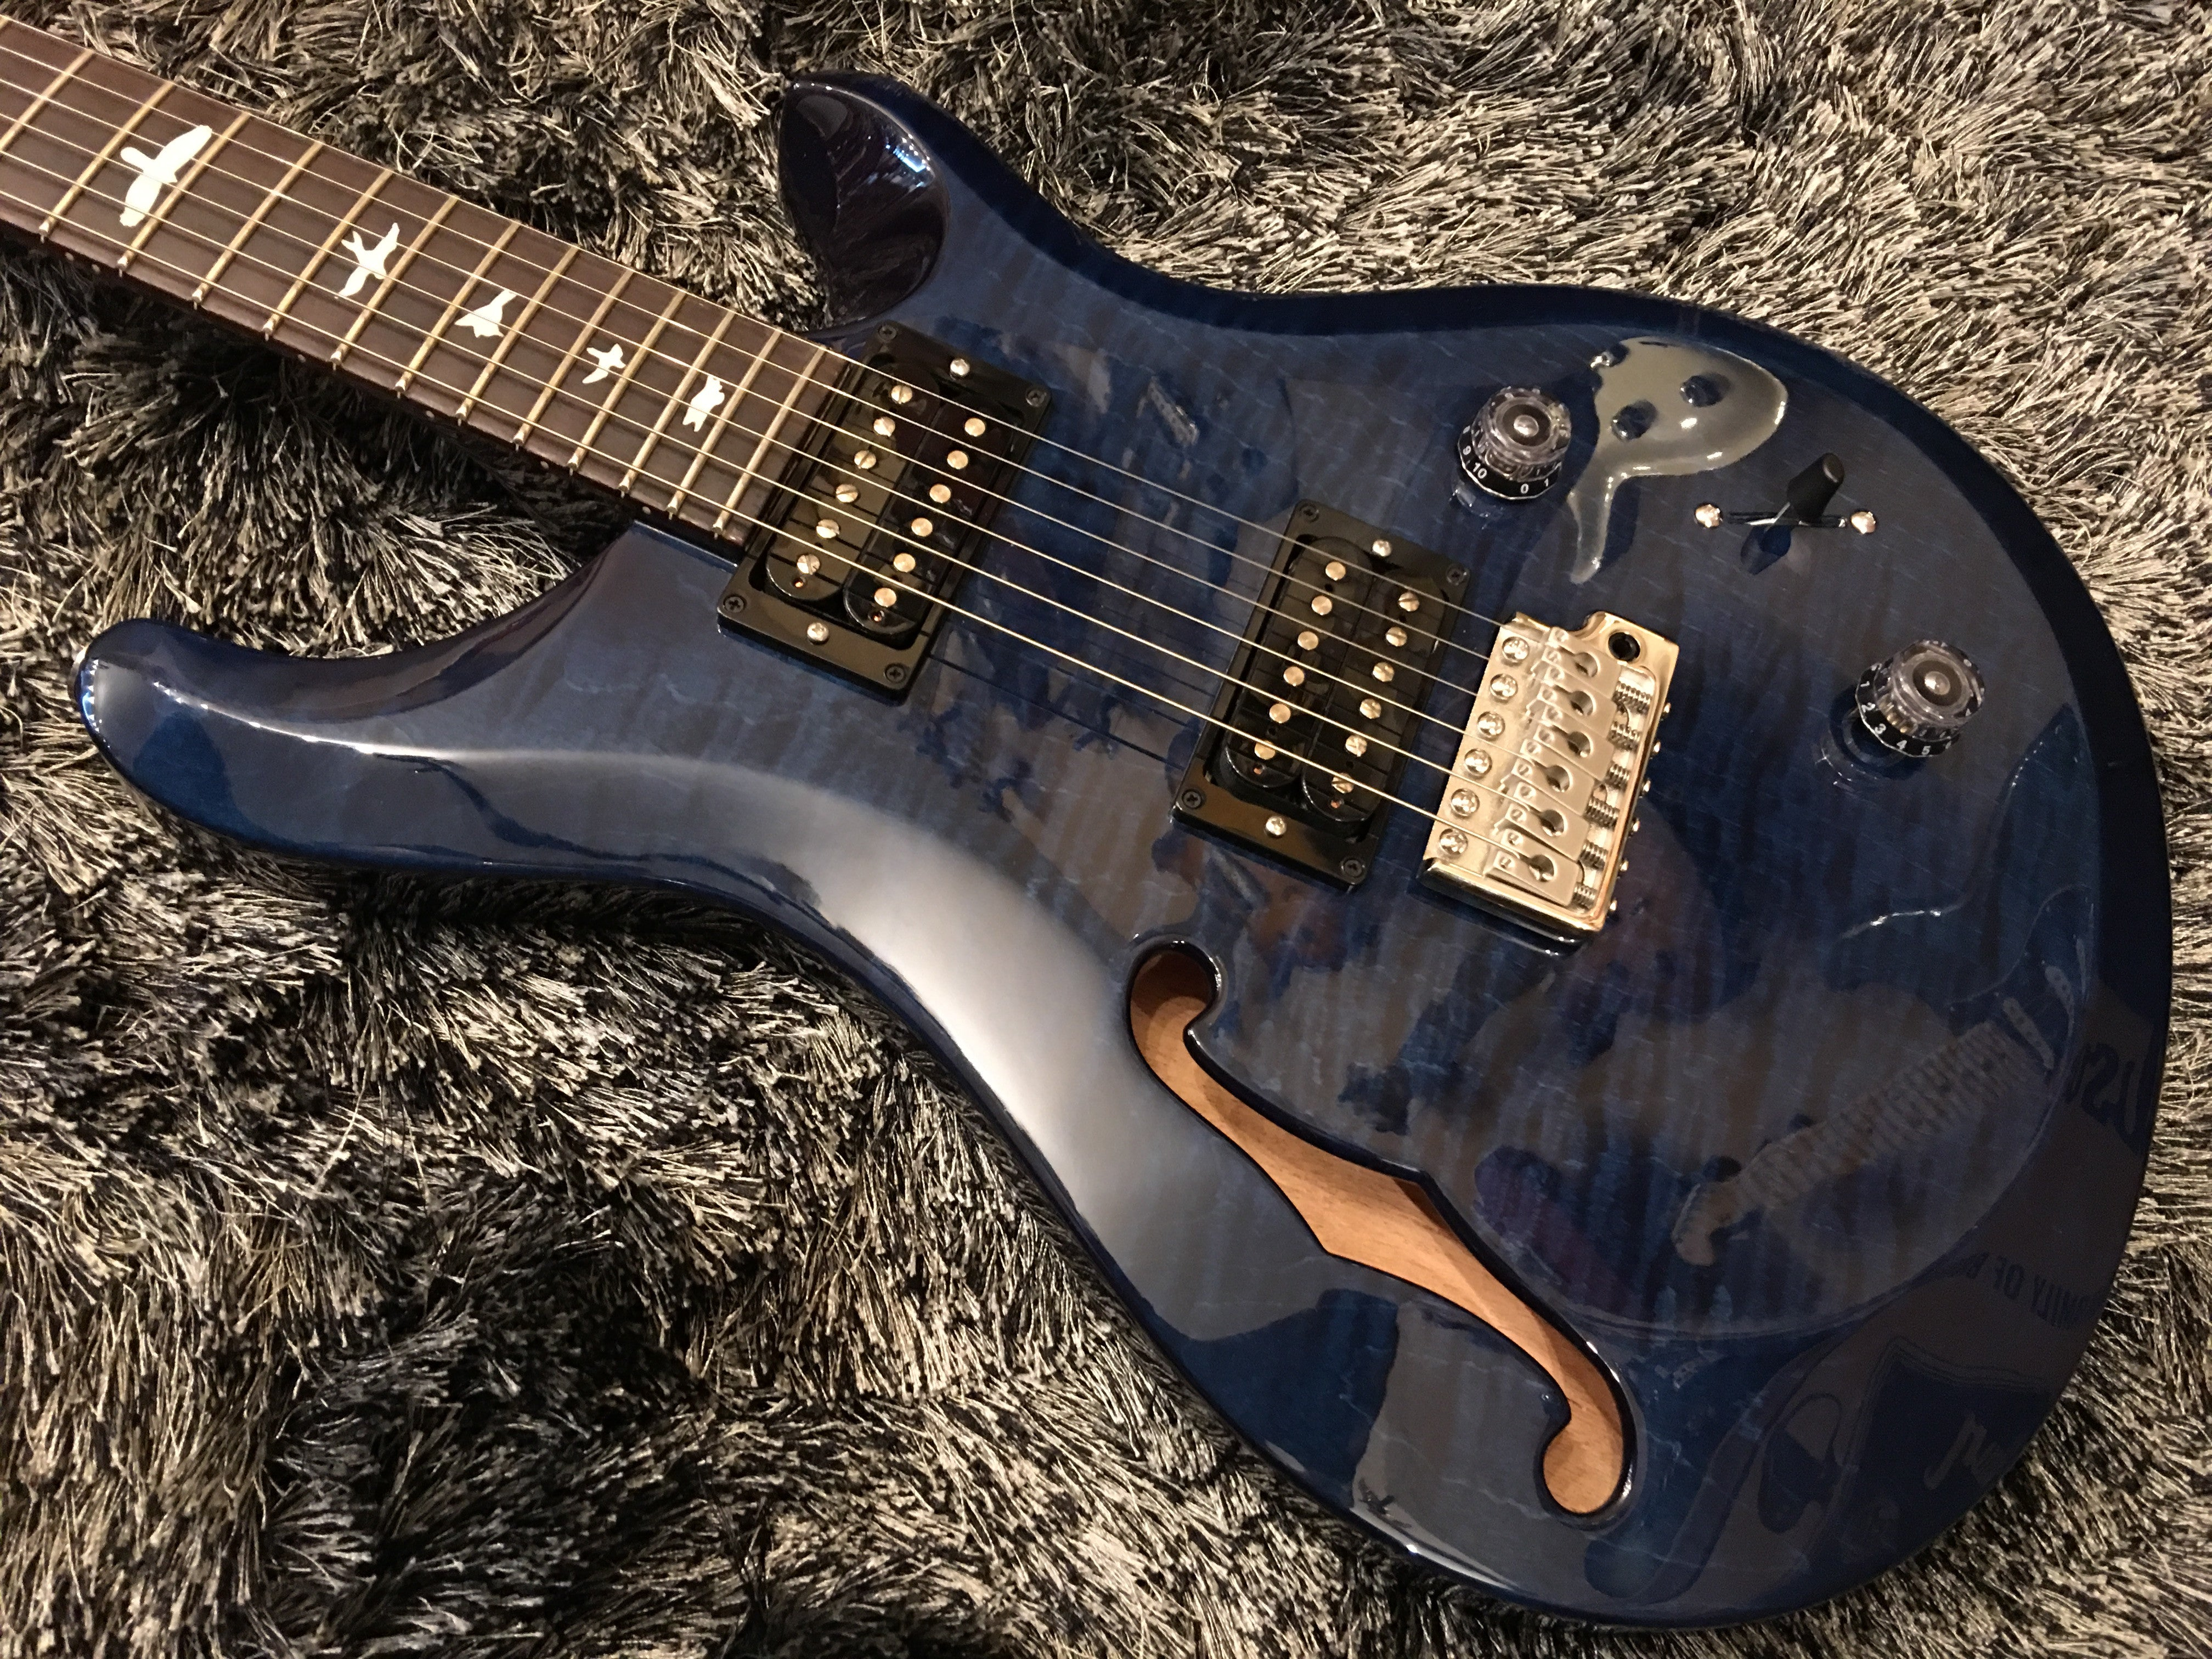 PRS S2 Custom 22 Semi-hollow - whale blue 2023926 PRS - HIENDGUITAR.COM